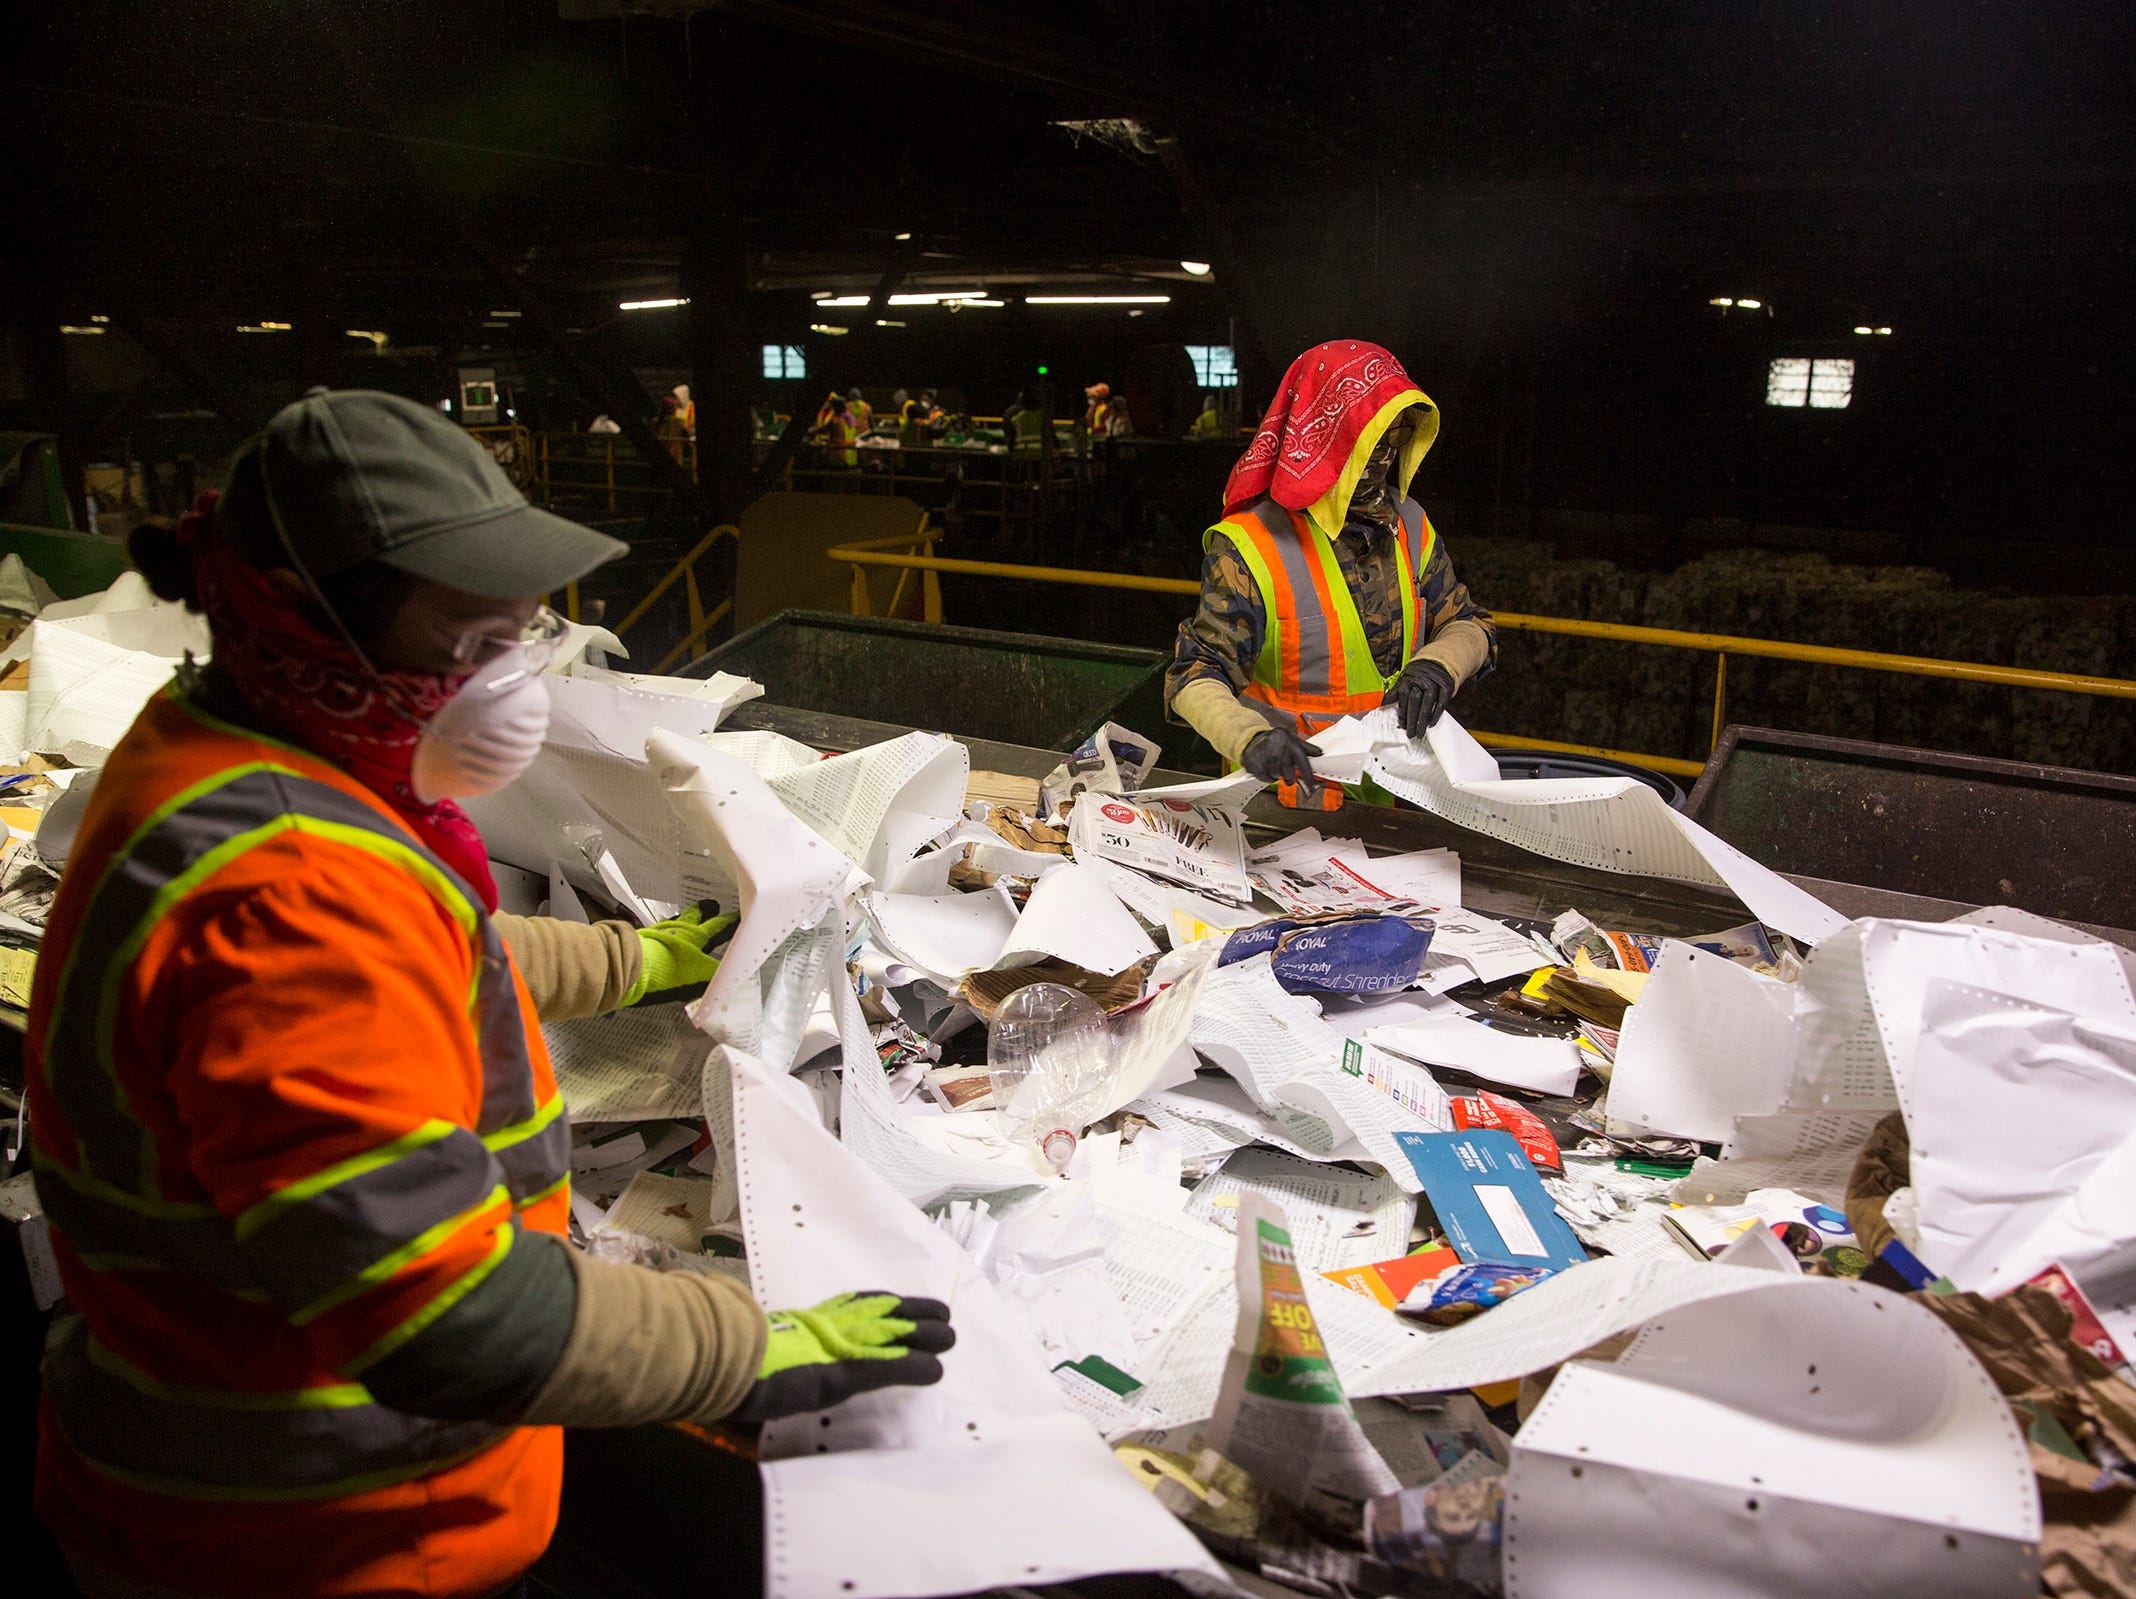 Garten Recycling Center employees separate recyclable and non-recyclable items at Salem on Thursday, Dec. 20, 2018.